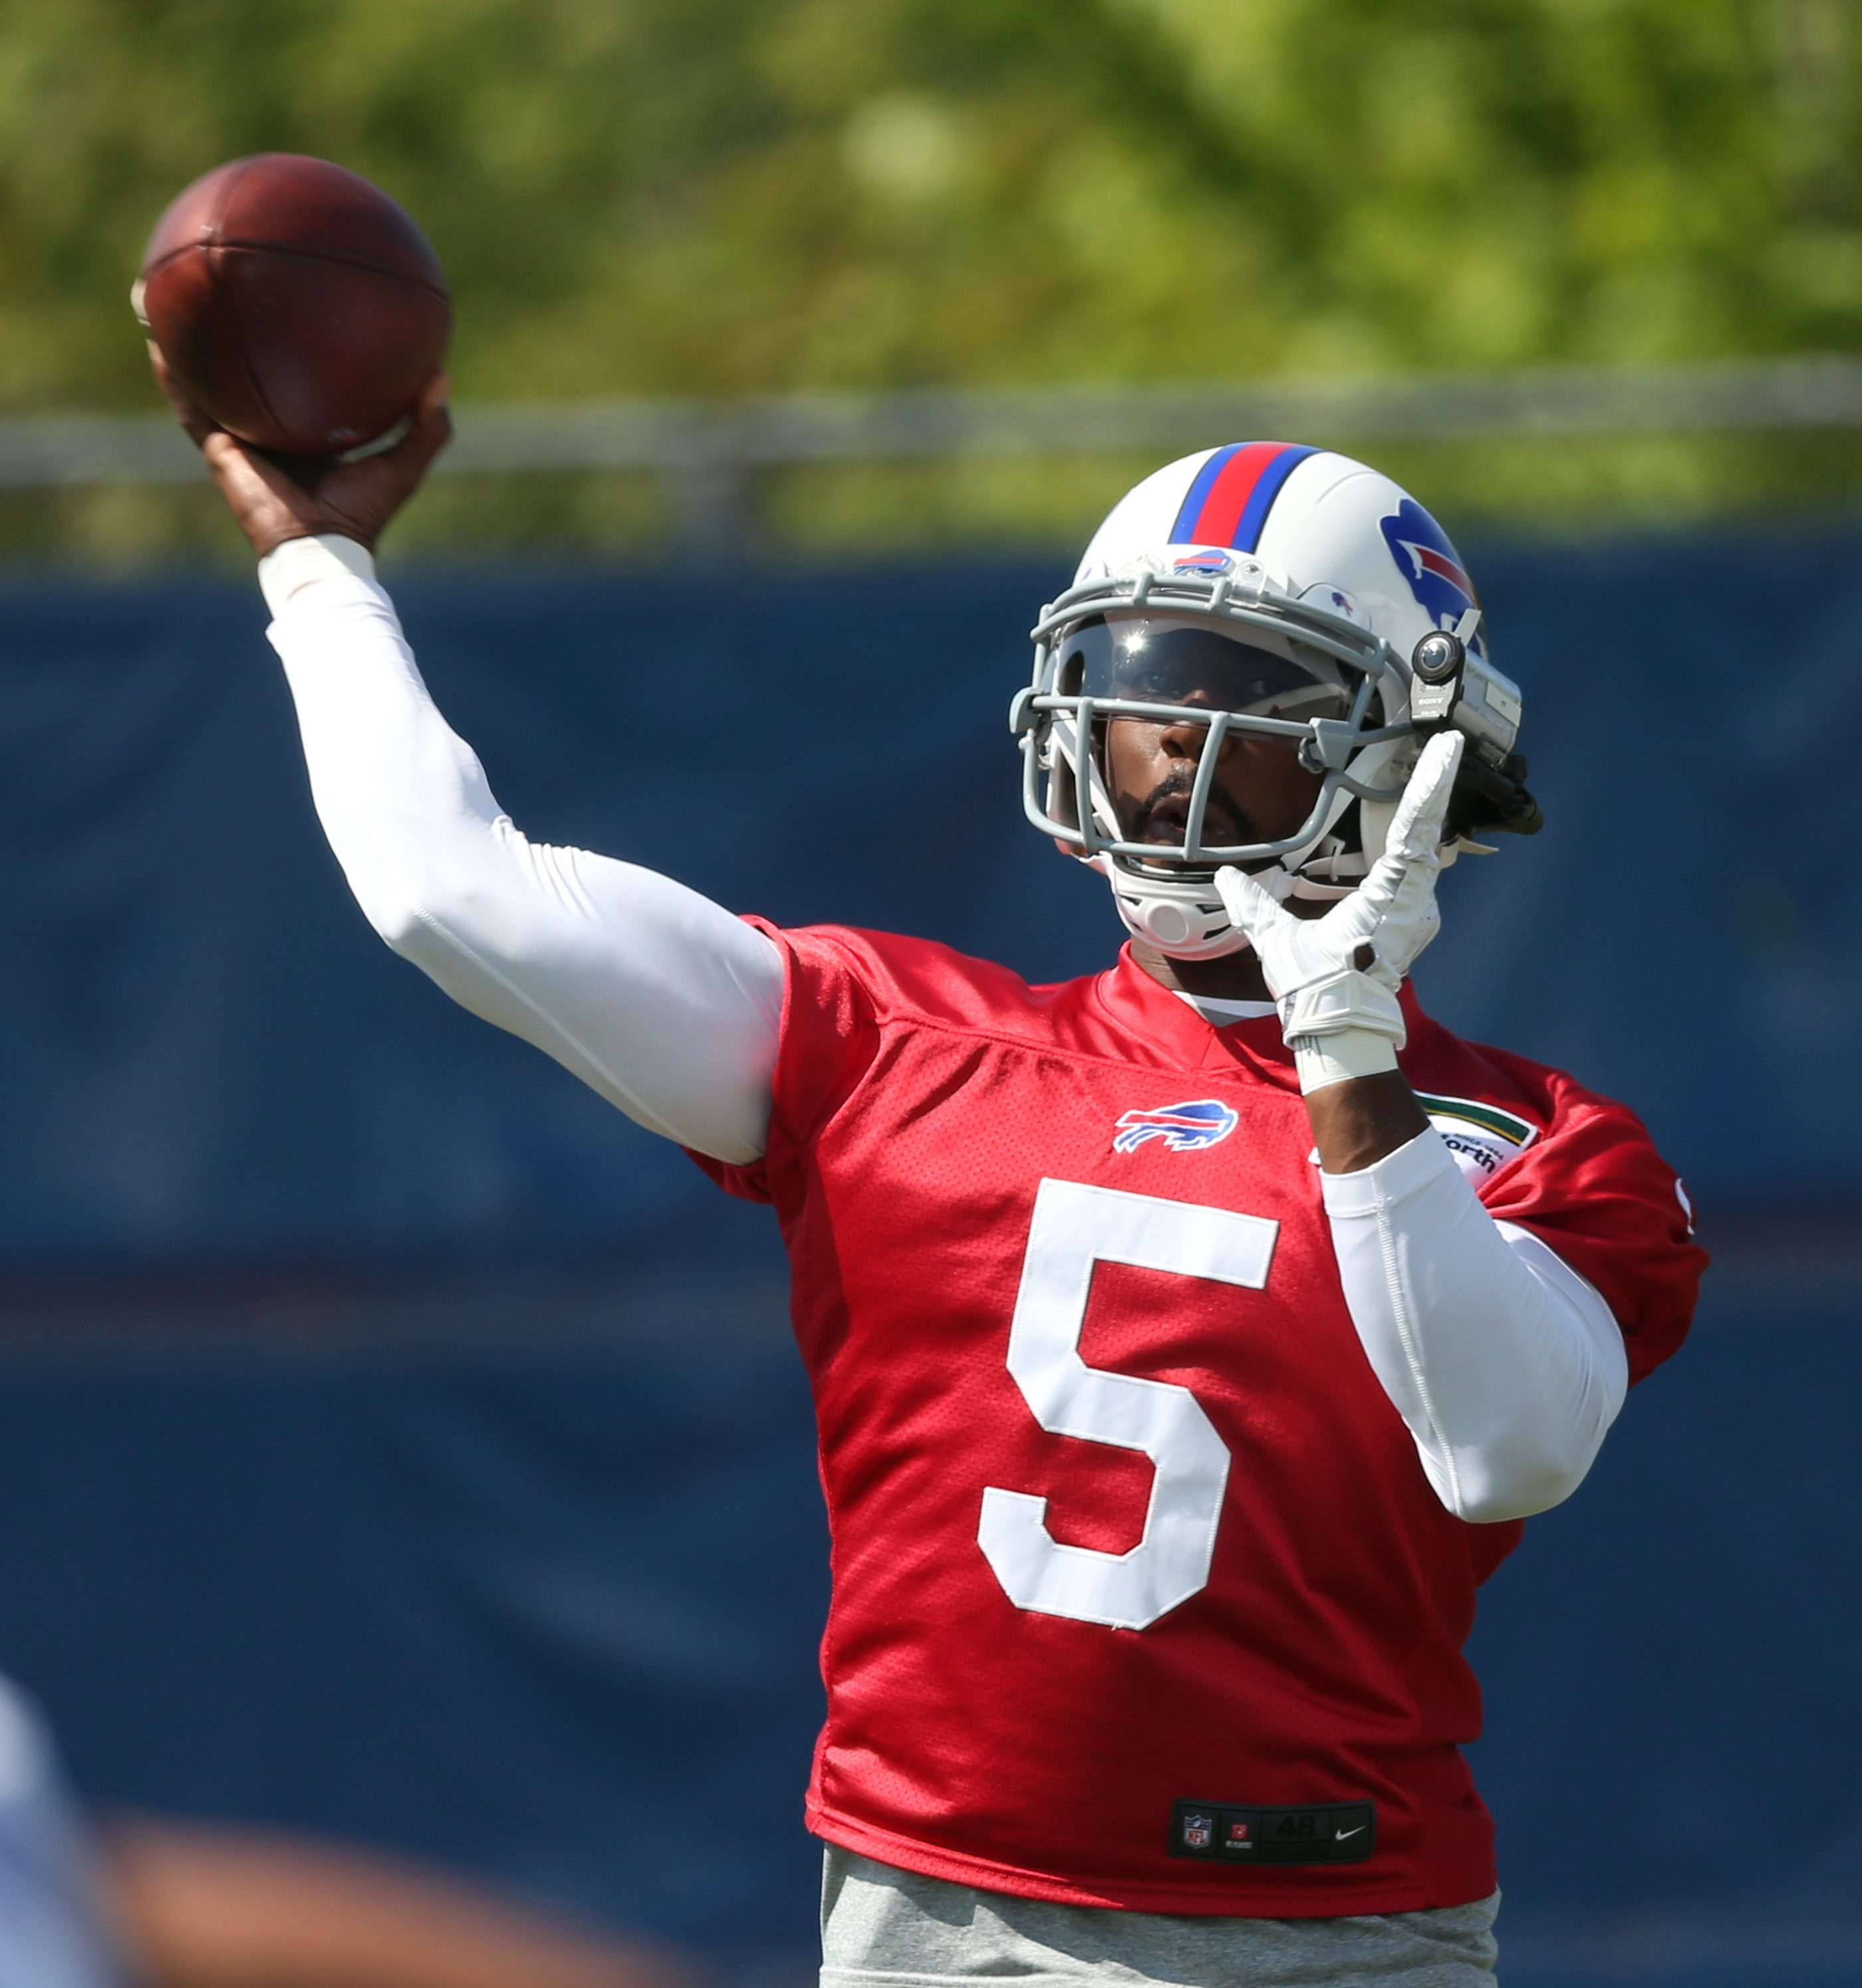 Tyrod Taylor throws a pass during Tuesday's workout in Orchard Park.